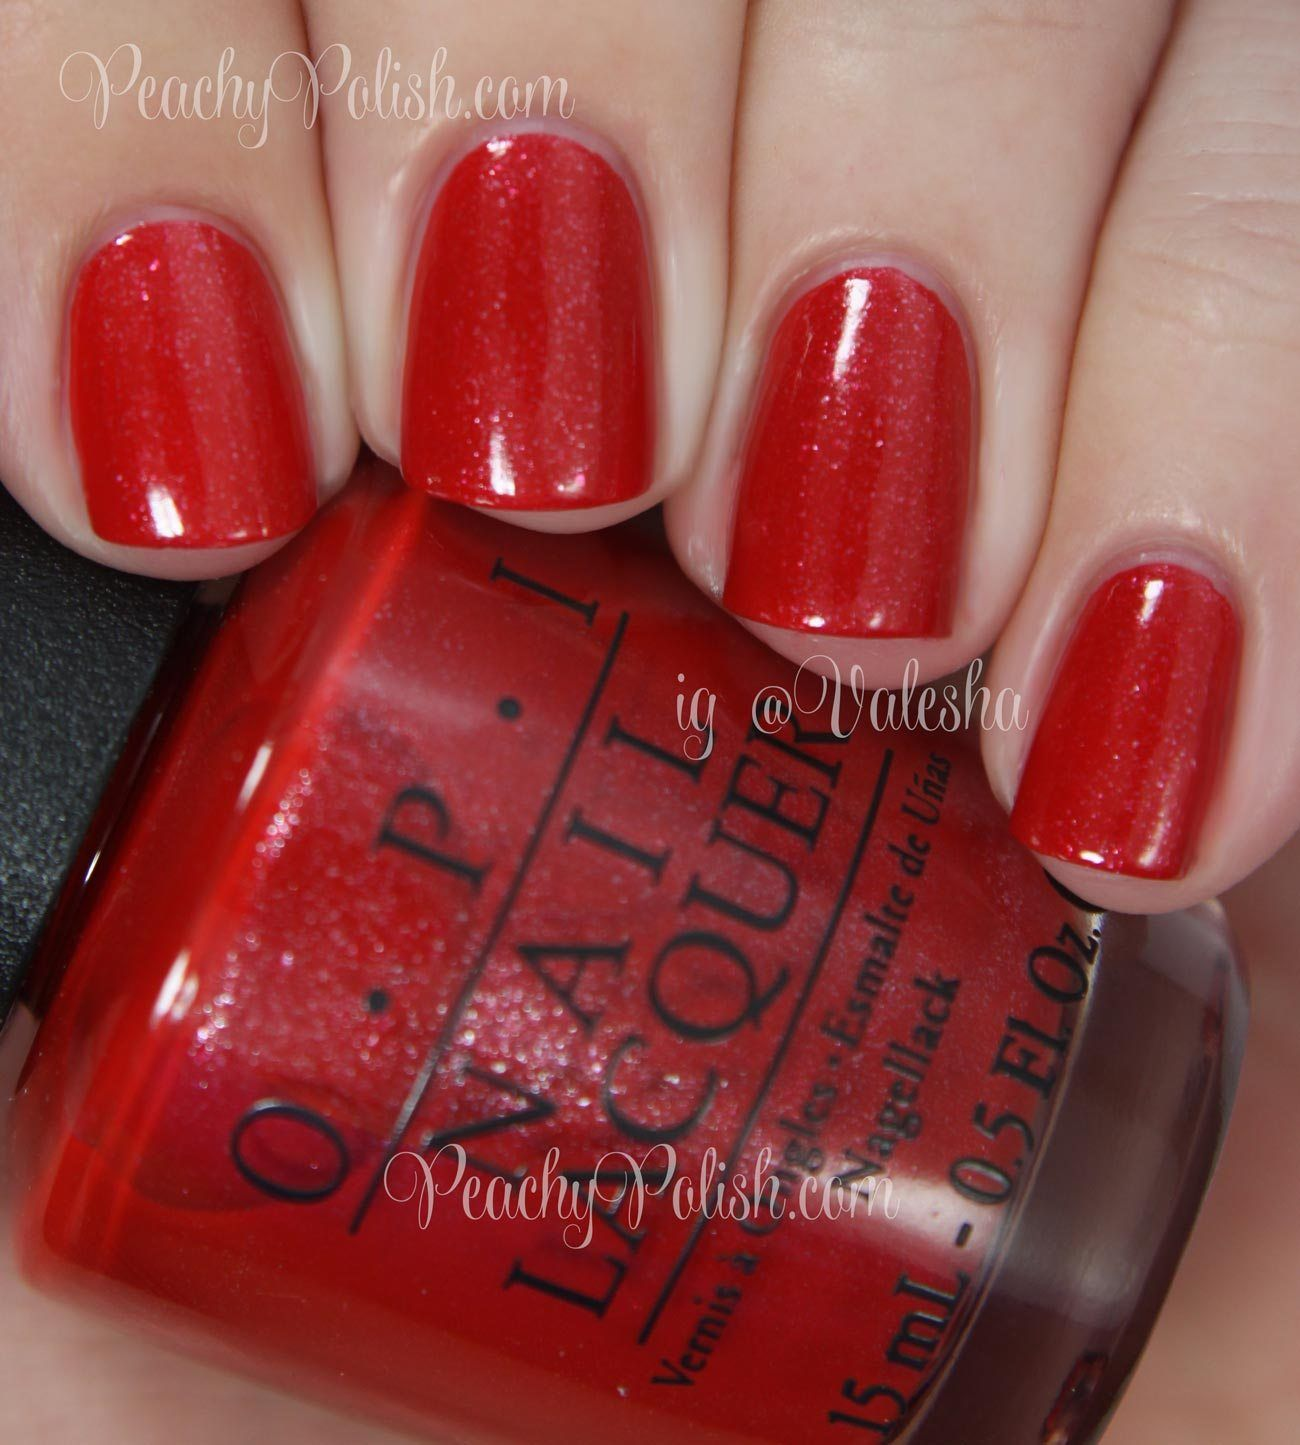 Opi Love Athletes In Cleats Is A Blue Toned Red With Silver Shimmer